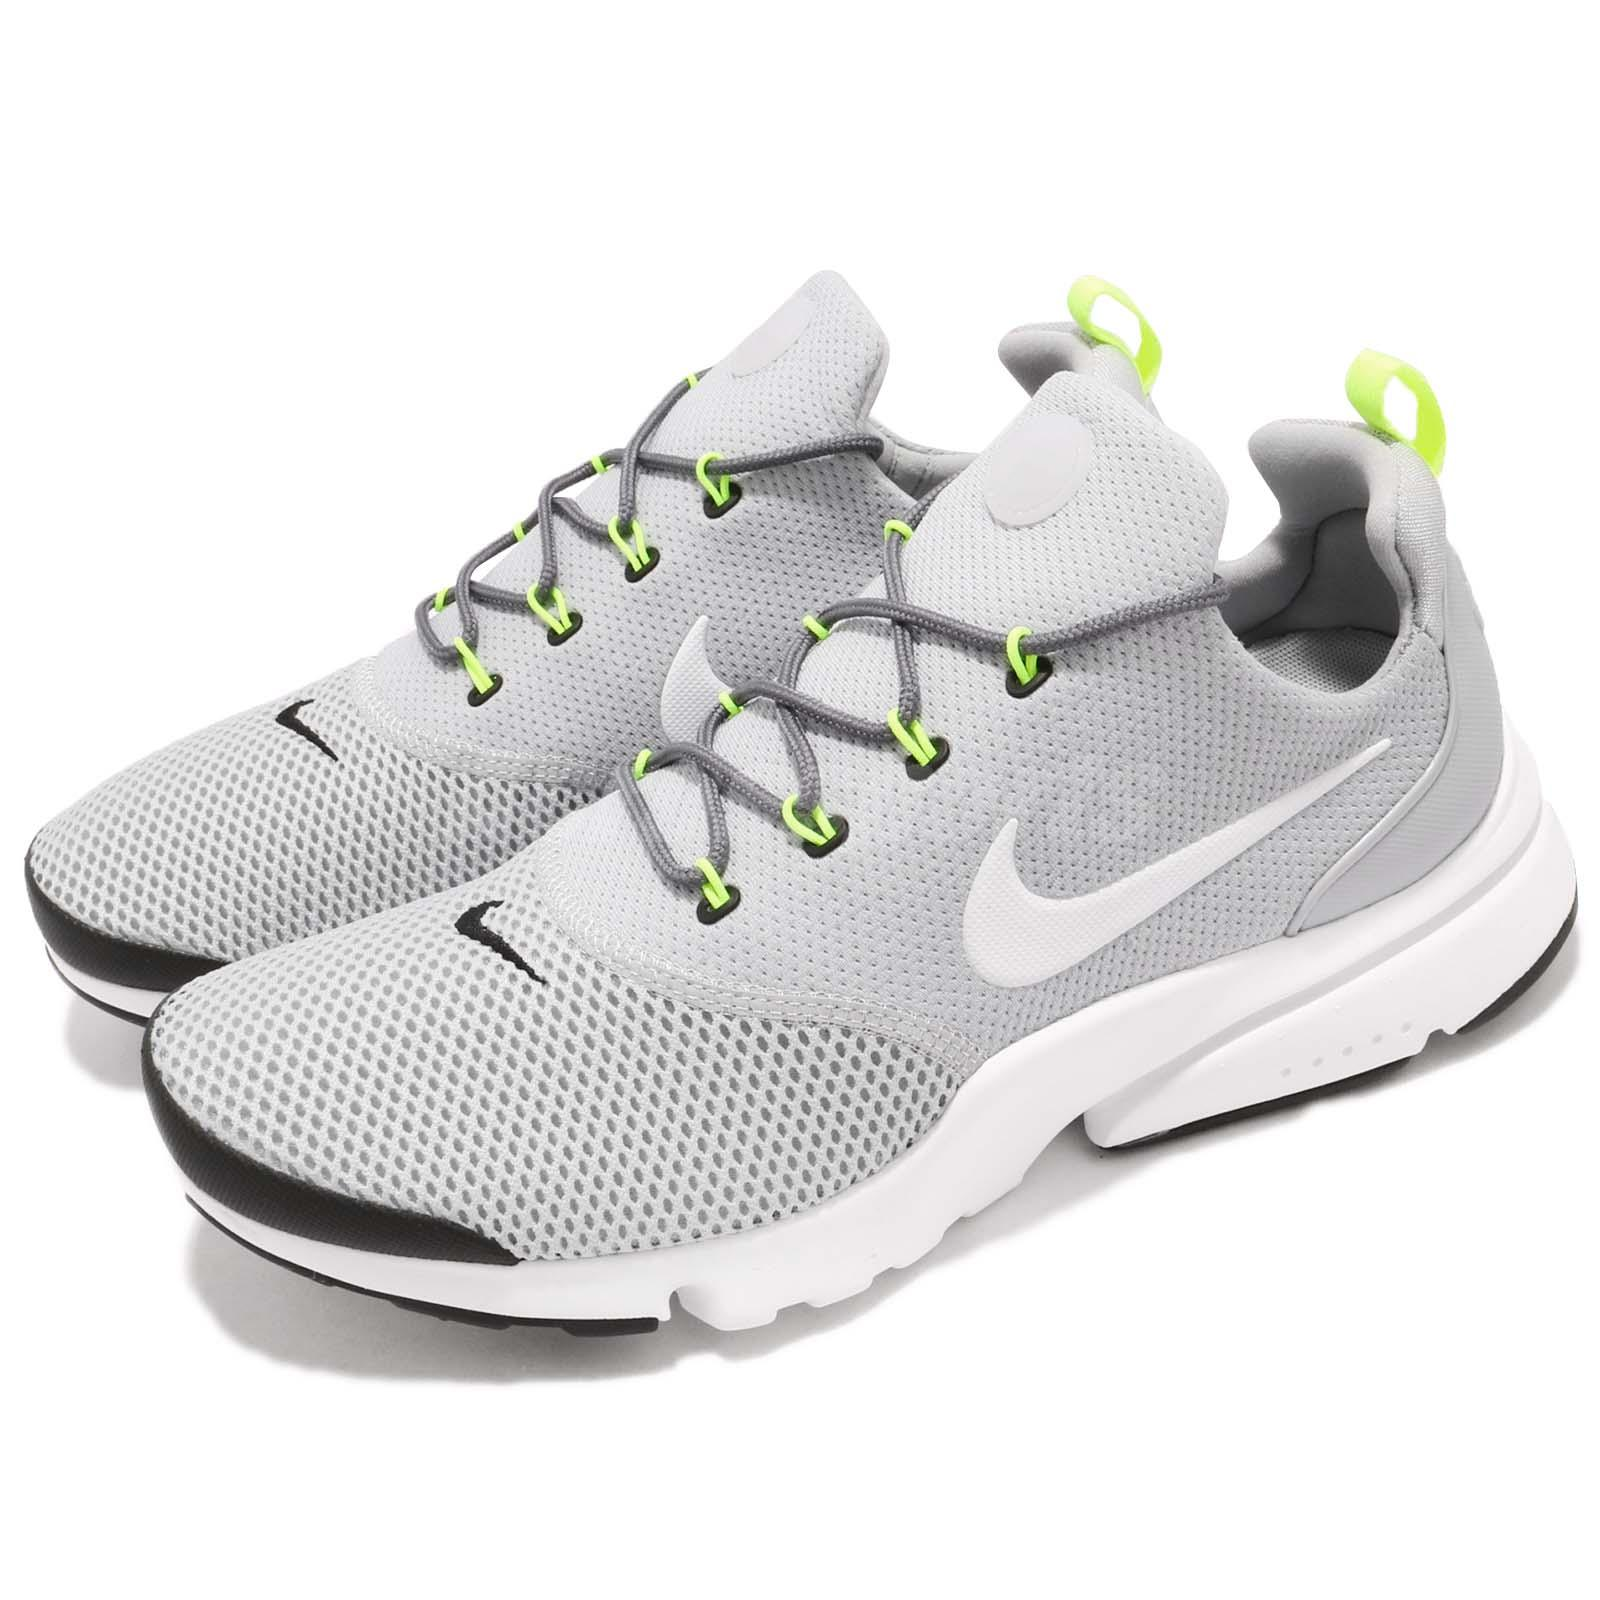 huge selection of f708e 55b11 Details about Nike Presto Fly Grey White Volt Black Men Running Shoes  Sneakers 908019-013